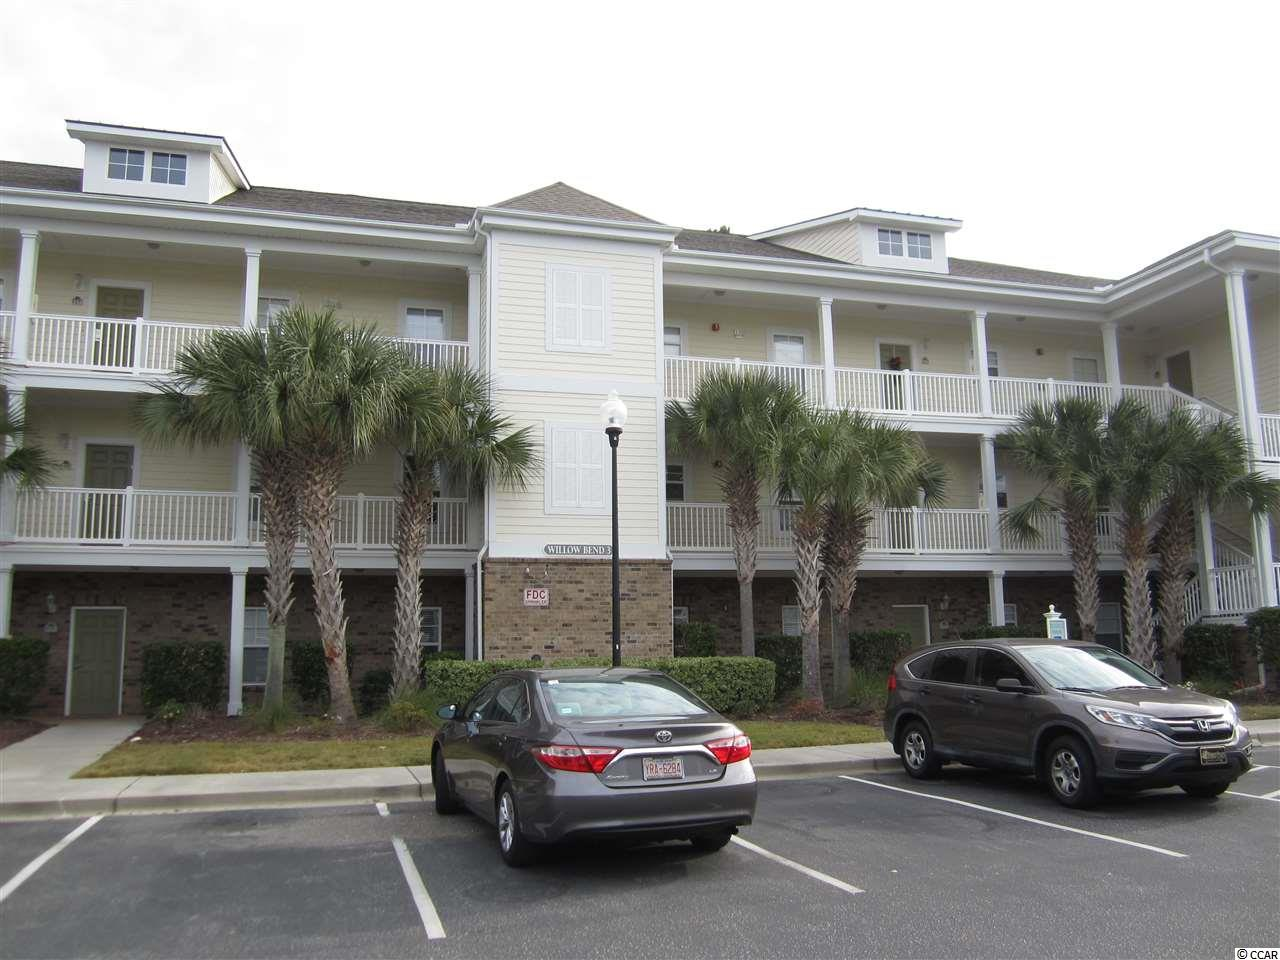 Here is your opportunity to own a well maintained 2 bedroom/2 bath condo at Barefoot's Willow Bend.  HVAC replaced in 2015, Water heater and carpet replaced in 2017. Both bathrooms freshly painted.  Sit on your 13 x 7 balcony overlooking the golf course and enjoy the tranquil natural setting.  Sold fully furnished, and higher ceilings make the space seem even larger than it is.  Storage closet on the back balcony for your beach chairs. Weekly or Annual rentals are allowed which gives you many possibilities or use it for your Golf getaway or 2nd home. An owner of a Barefoot property has the privilege to use the Barefoot Beach Cabana and if you don't want to drive to the Beach take the shuttle. Willow Bend has an outdoor pool and picnic area with grills. This condo has a transferrable Barefoot Social membership.   Measurements are approximate, Buyer to verify.